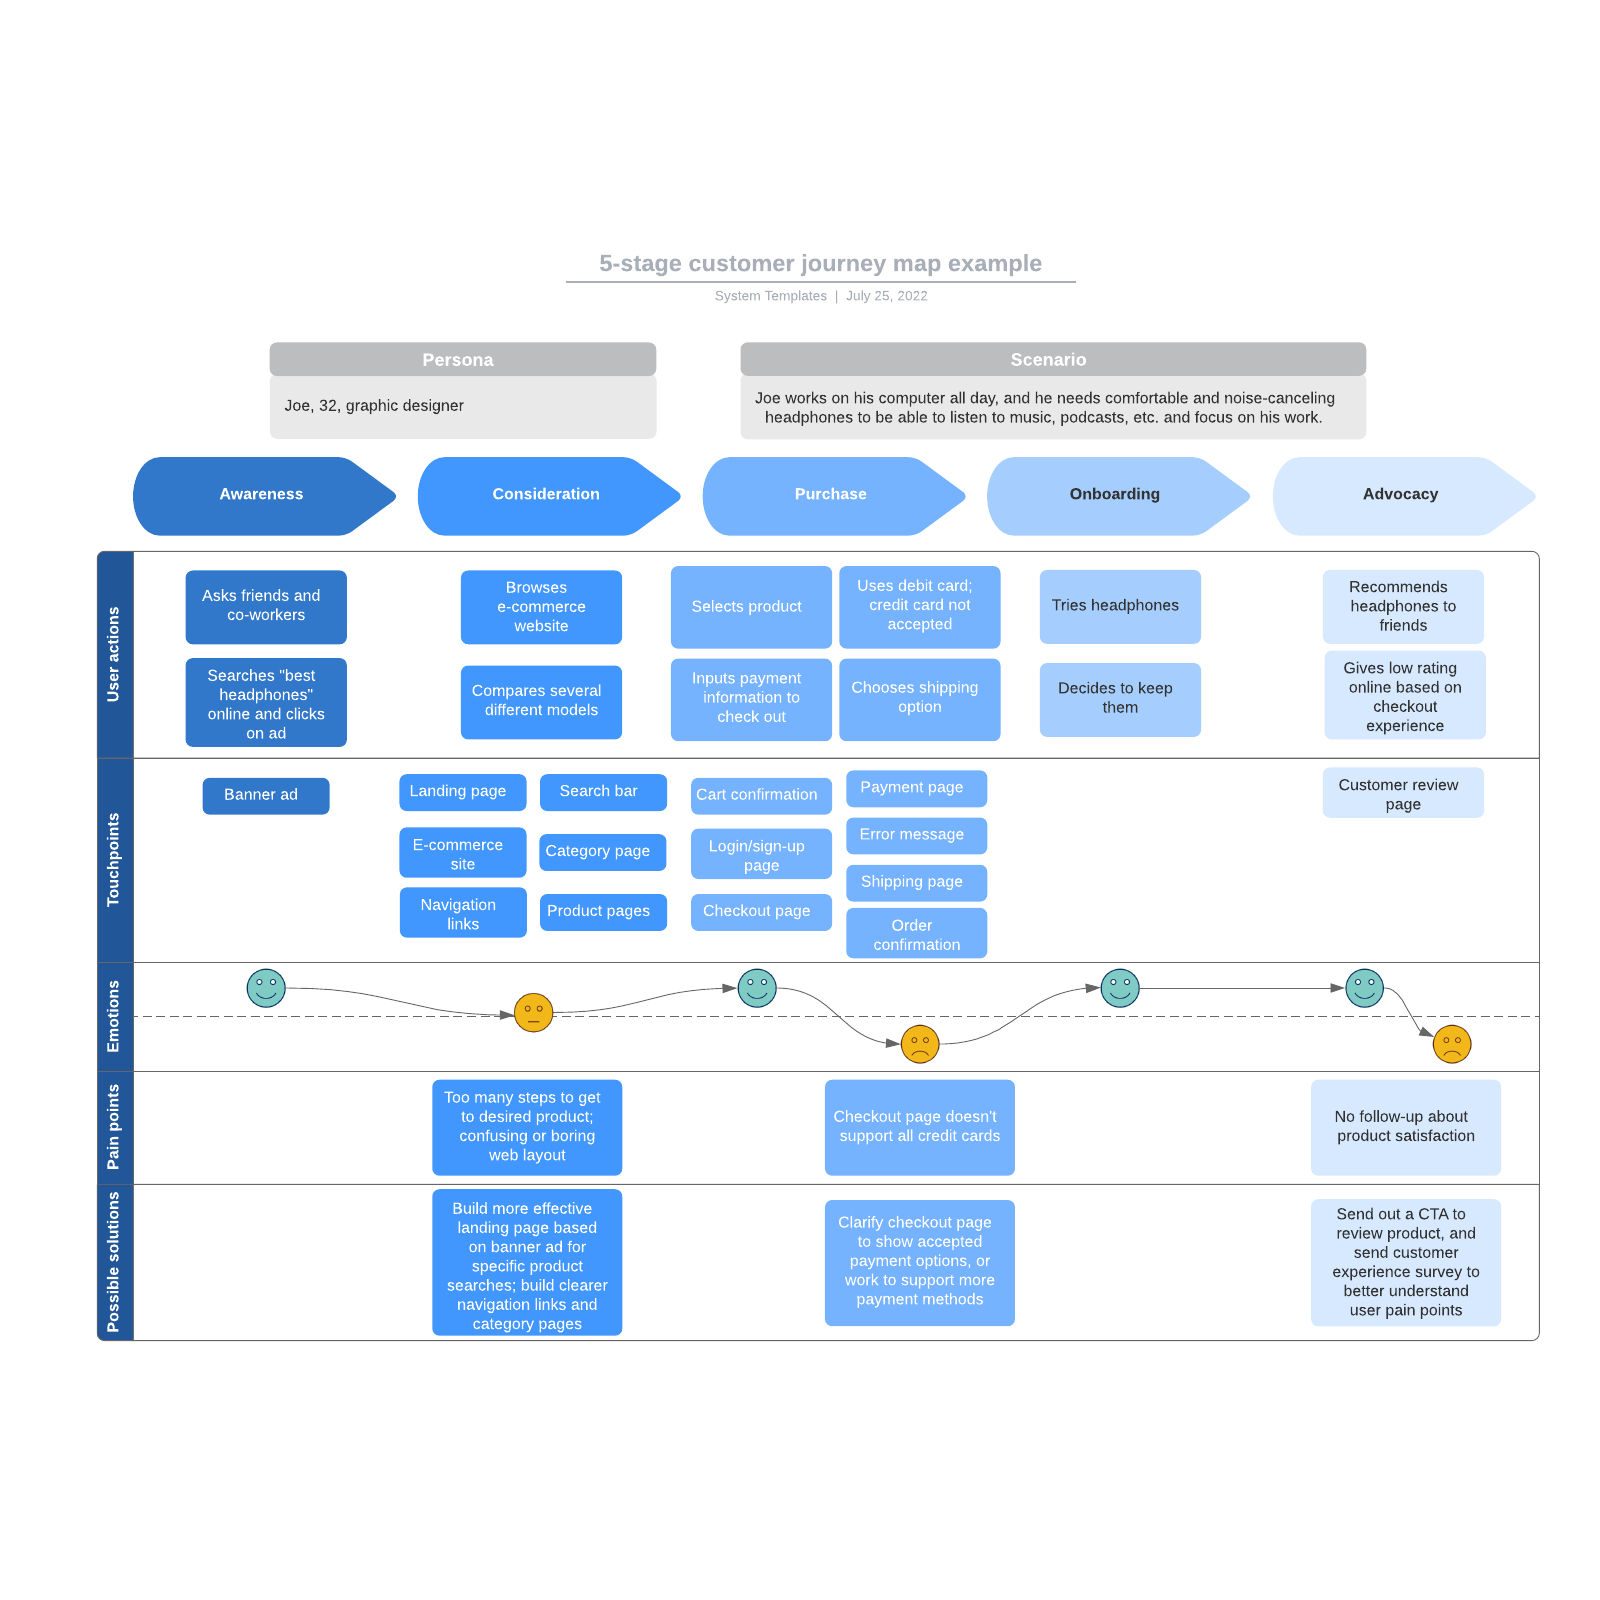 5-stage customer journey map example